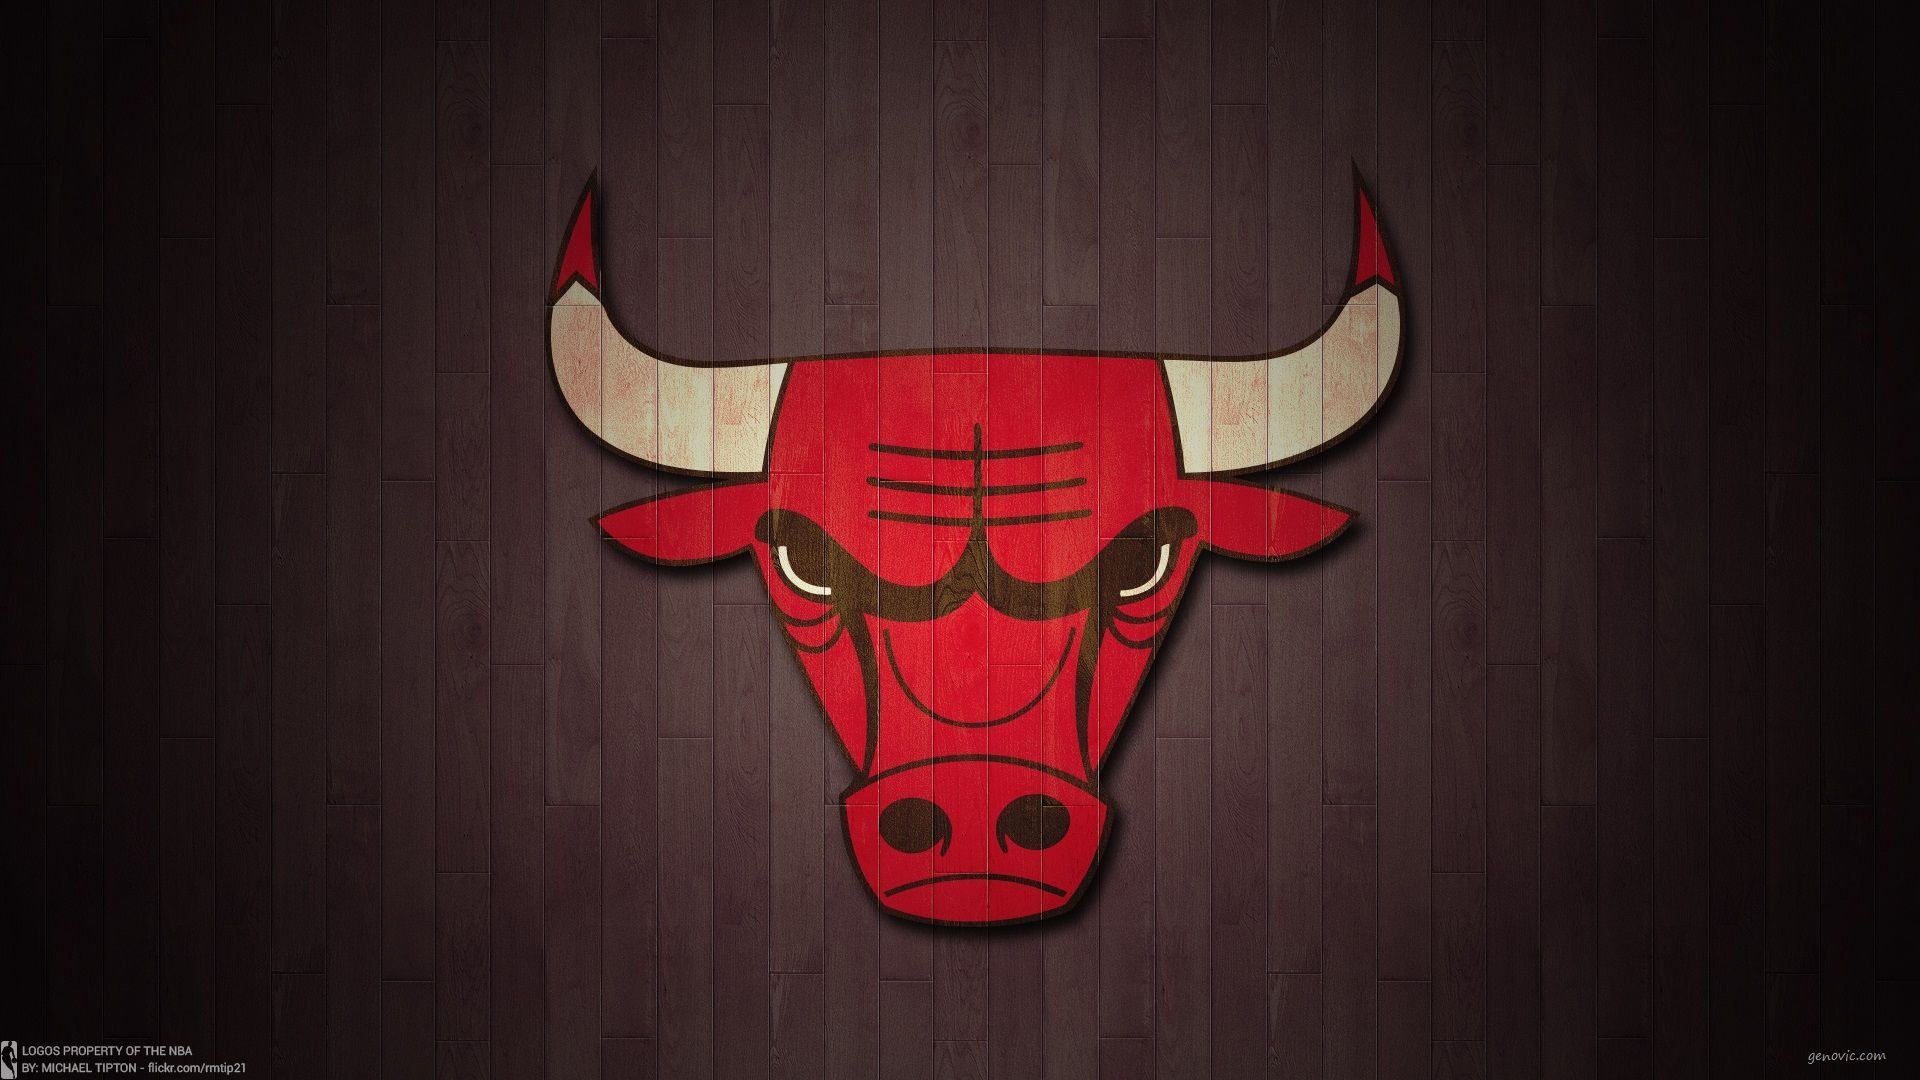 Chicago Bulls Logo Wallpaper